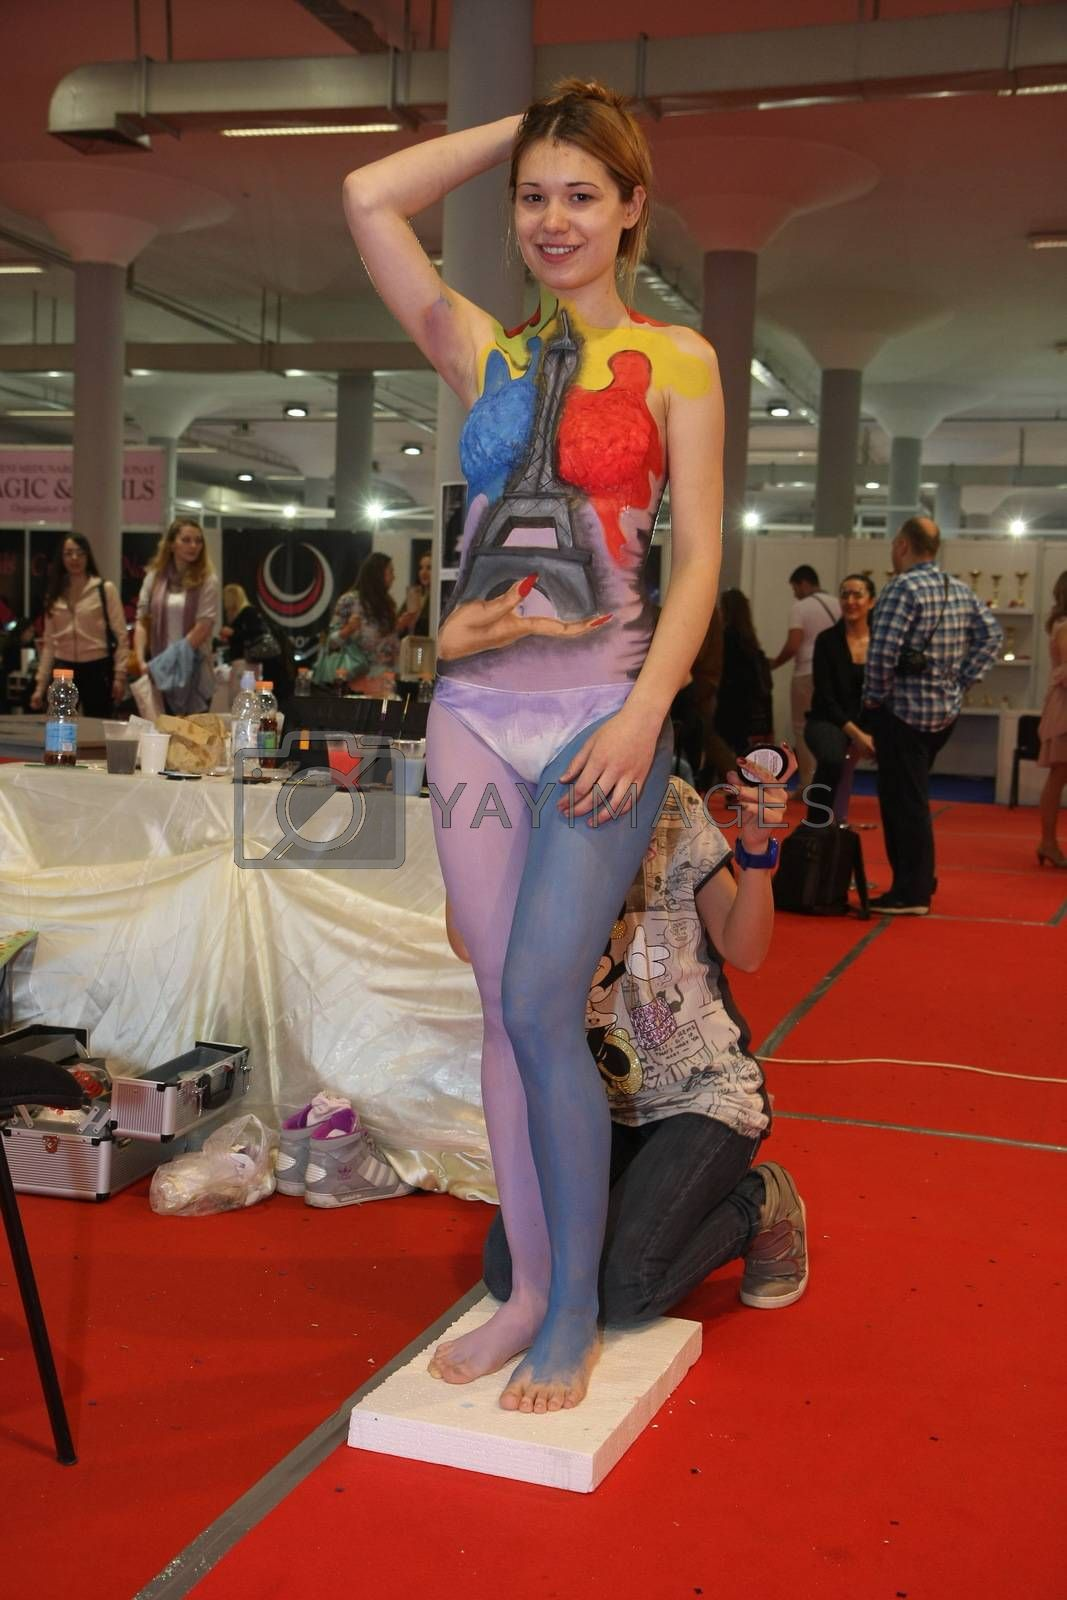 Body art at 23th iinternational fair and congress of cosmetics, solarium, equipment, wellness, spa and hair care, the largest beauty fair in South-east Europe, The touch of Paris, 26th and 27th April 2014. Belgrade,Serbia